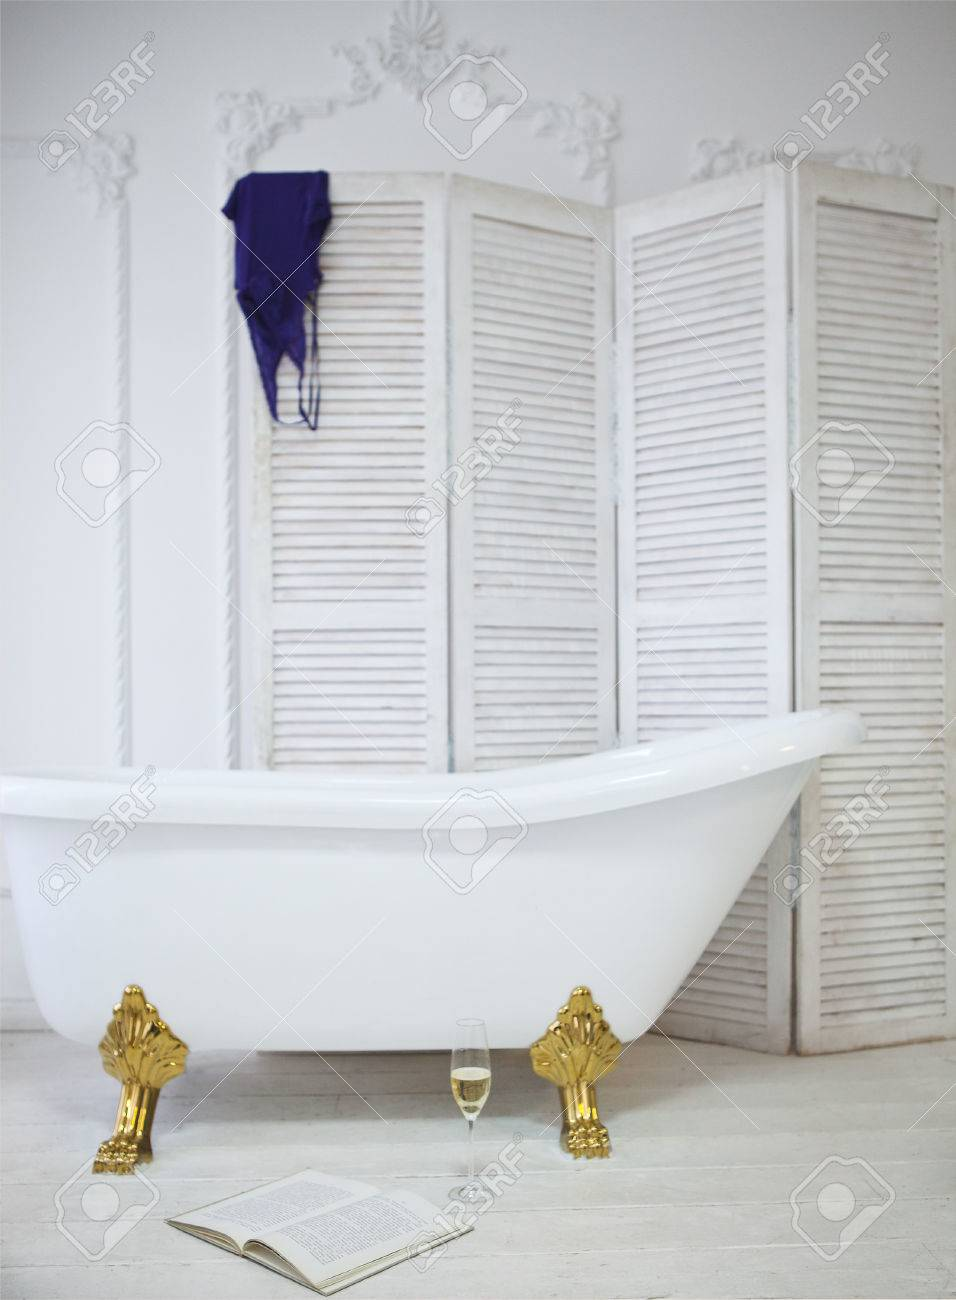 Claw Foot Bath In A White Classical Bathroom With Champagne And ...